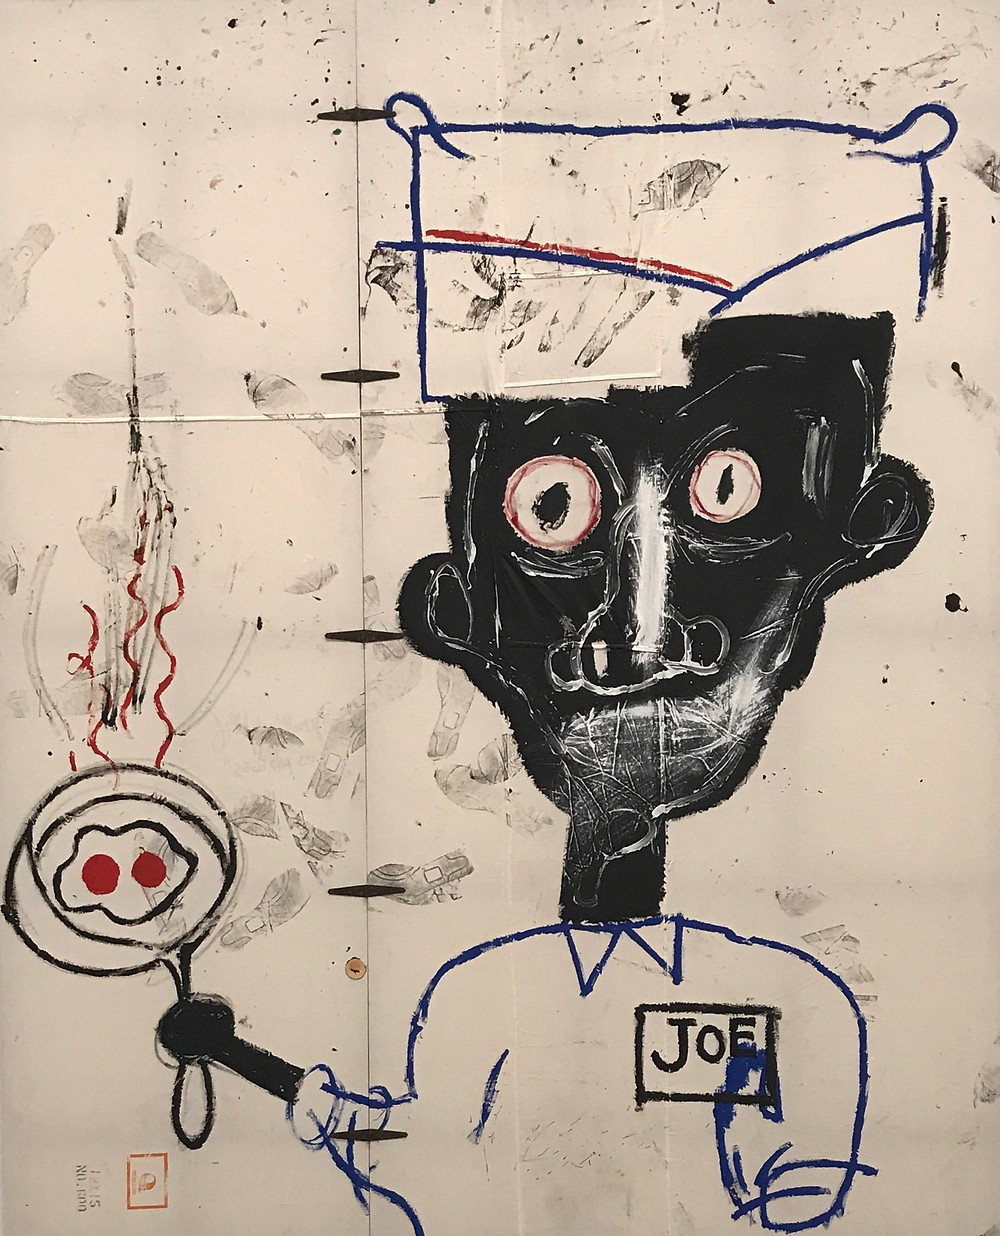 Jean‐Michel Basquiat 1983 acrylic, oilstick and paper collage on cotton drop cloth with metal hinges 119 x 97 in. (302.3 x 246.4 cm)